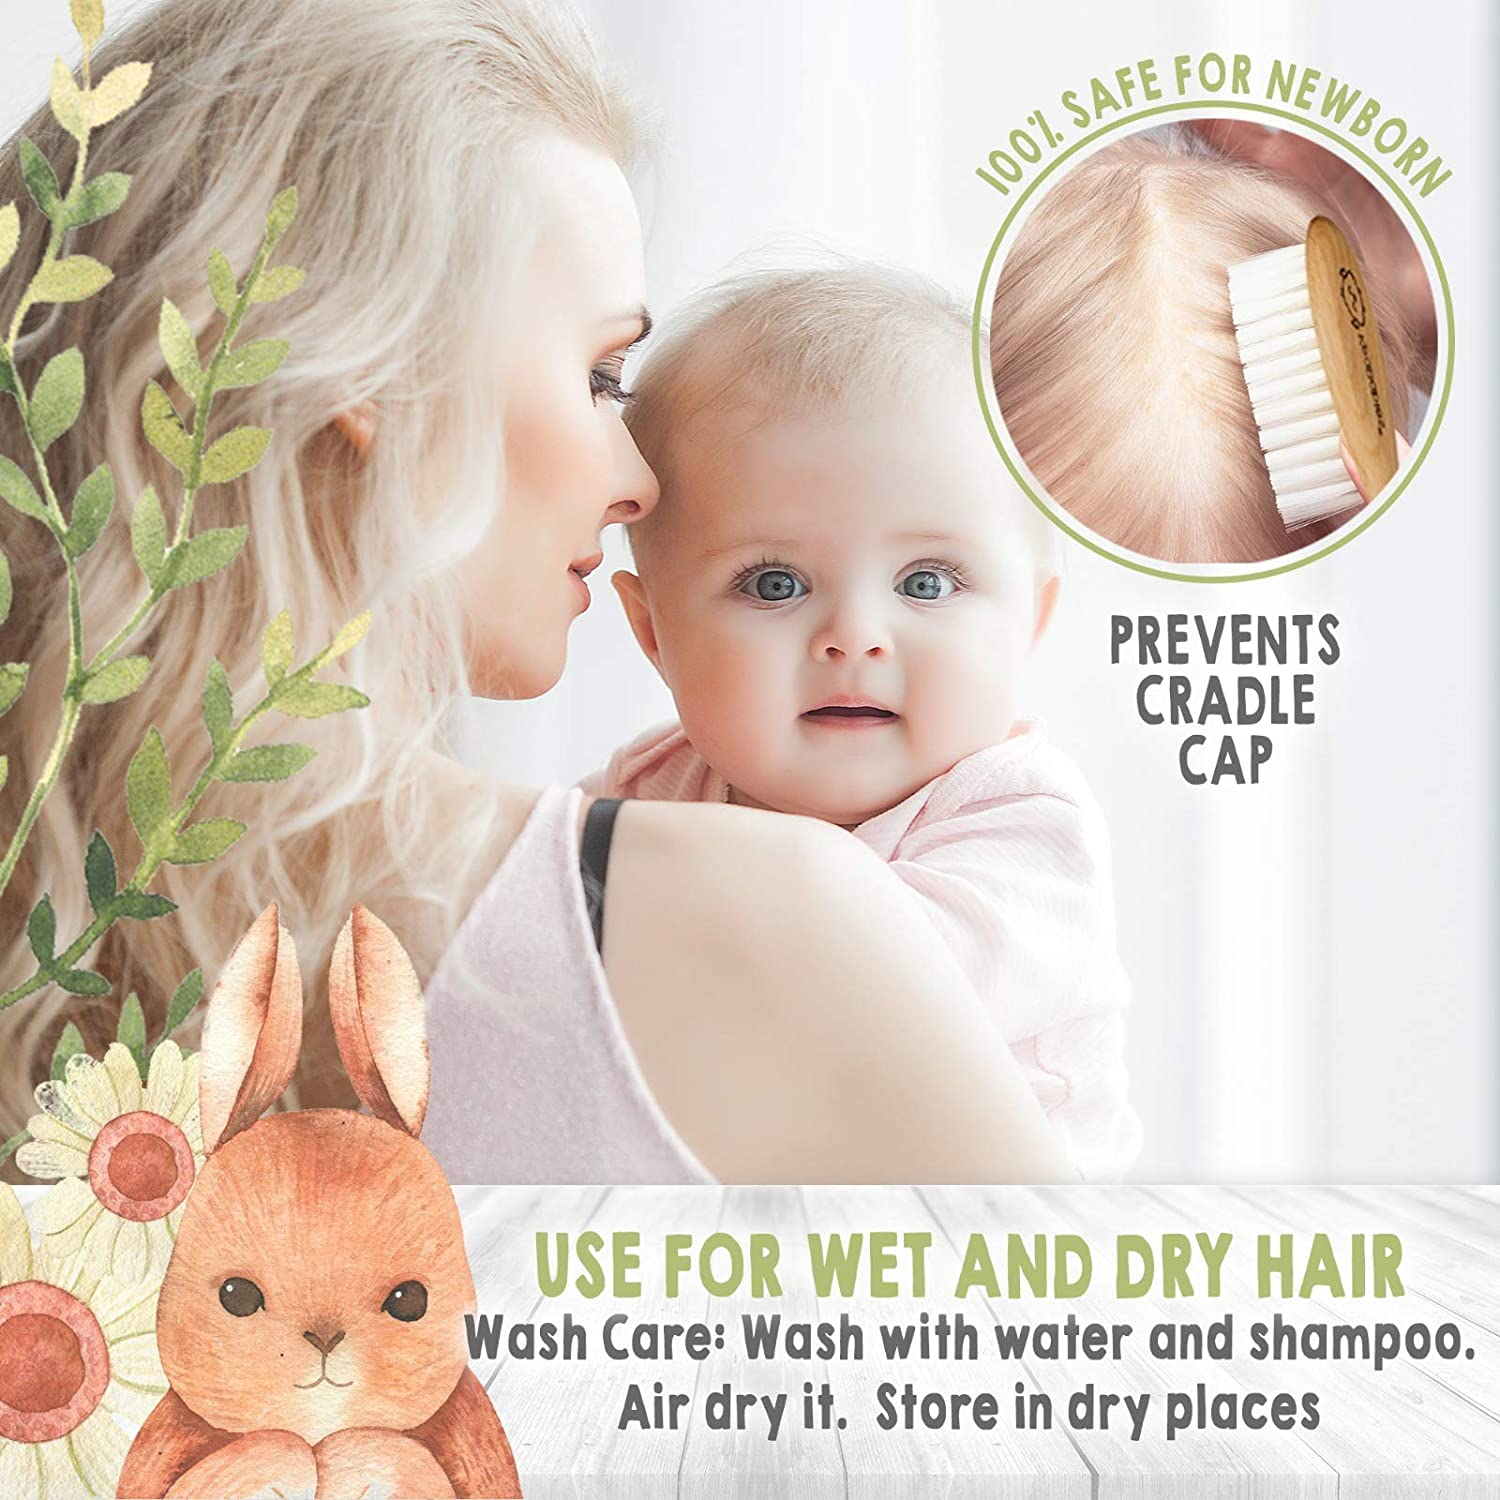 Baby Hair Brush and Comb Set for Newborn - Natural Wooden Hairbrush with Soft Goat Bristles for Cradle Cap - Perfect Scalp Grooming Product for Infant, Toddler, Kids - Baby Registry Gift